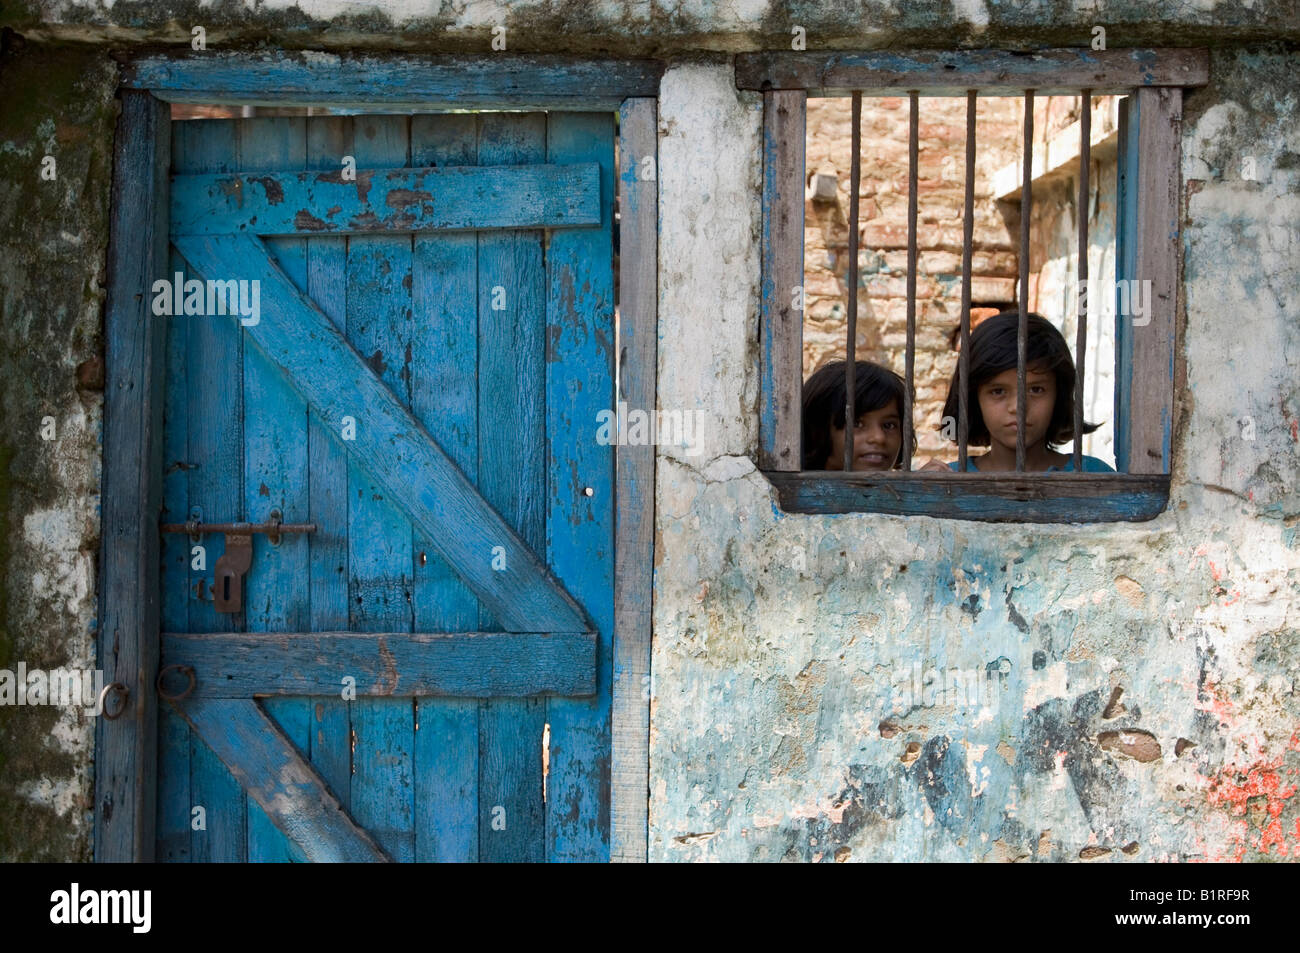 Two girls looking through a barred window in the Pilkana slums, Howrath, West Bengal, India - Stock Image